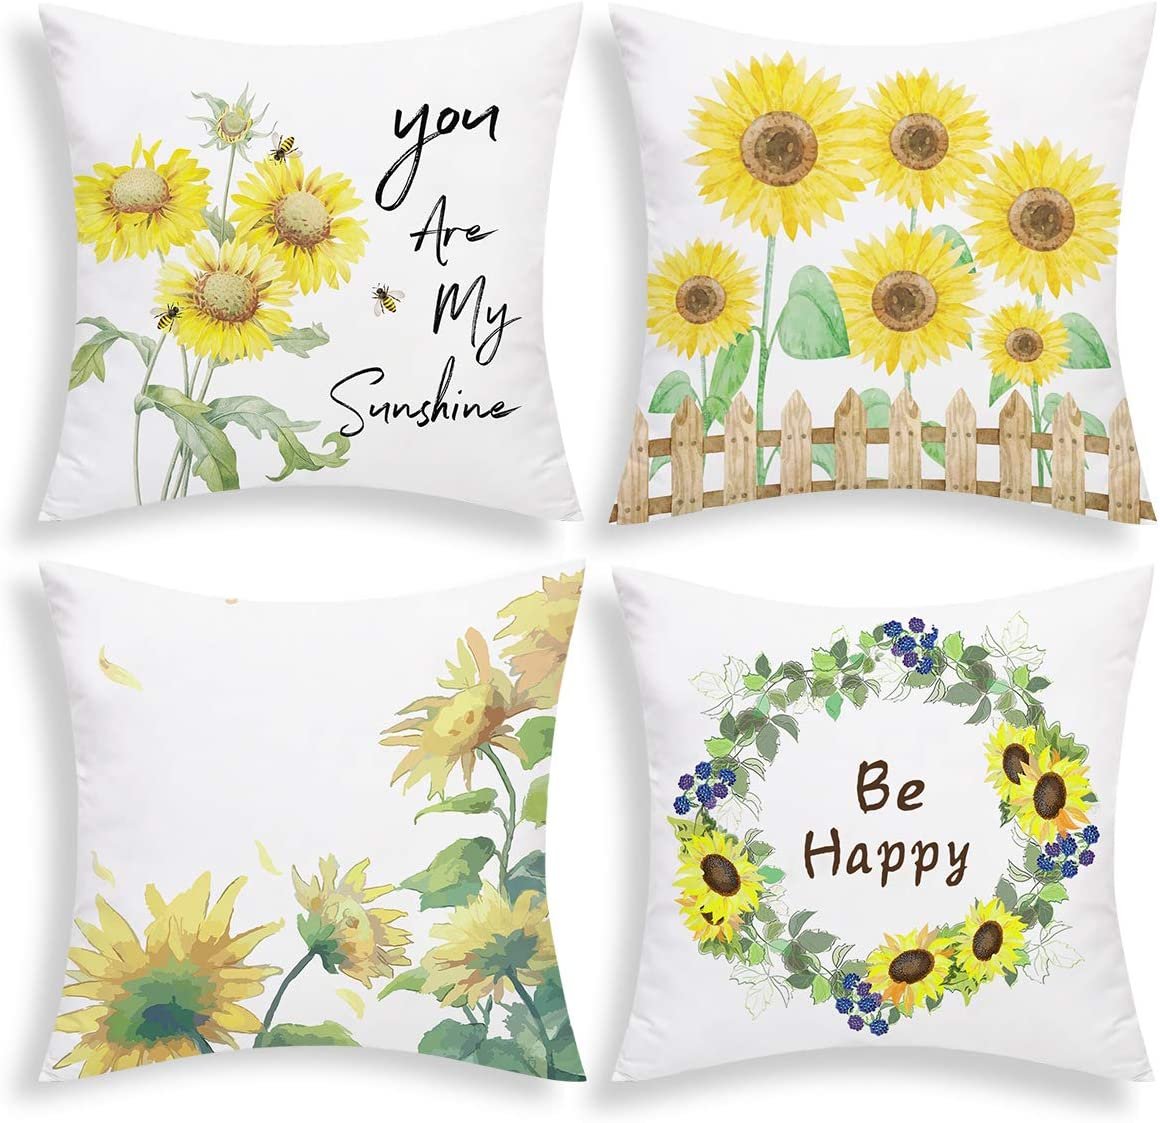 Amazon Com Bleum Cade Sunflowers Throw Pillow Cover Fall Pillow Covers Set Of 4 Decorative Autumn Cushion Covers For Sofa Couch Bed Car Yellow 18 X 18 Inch Home Kitchen